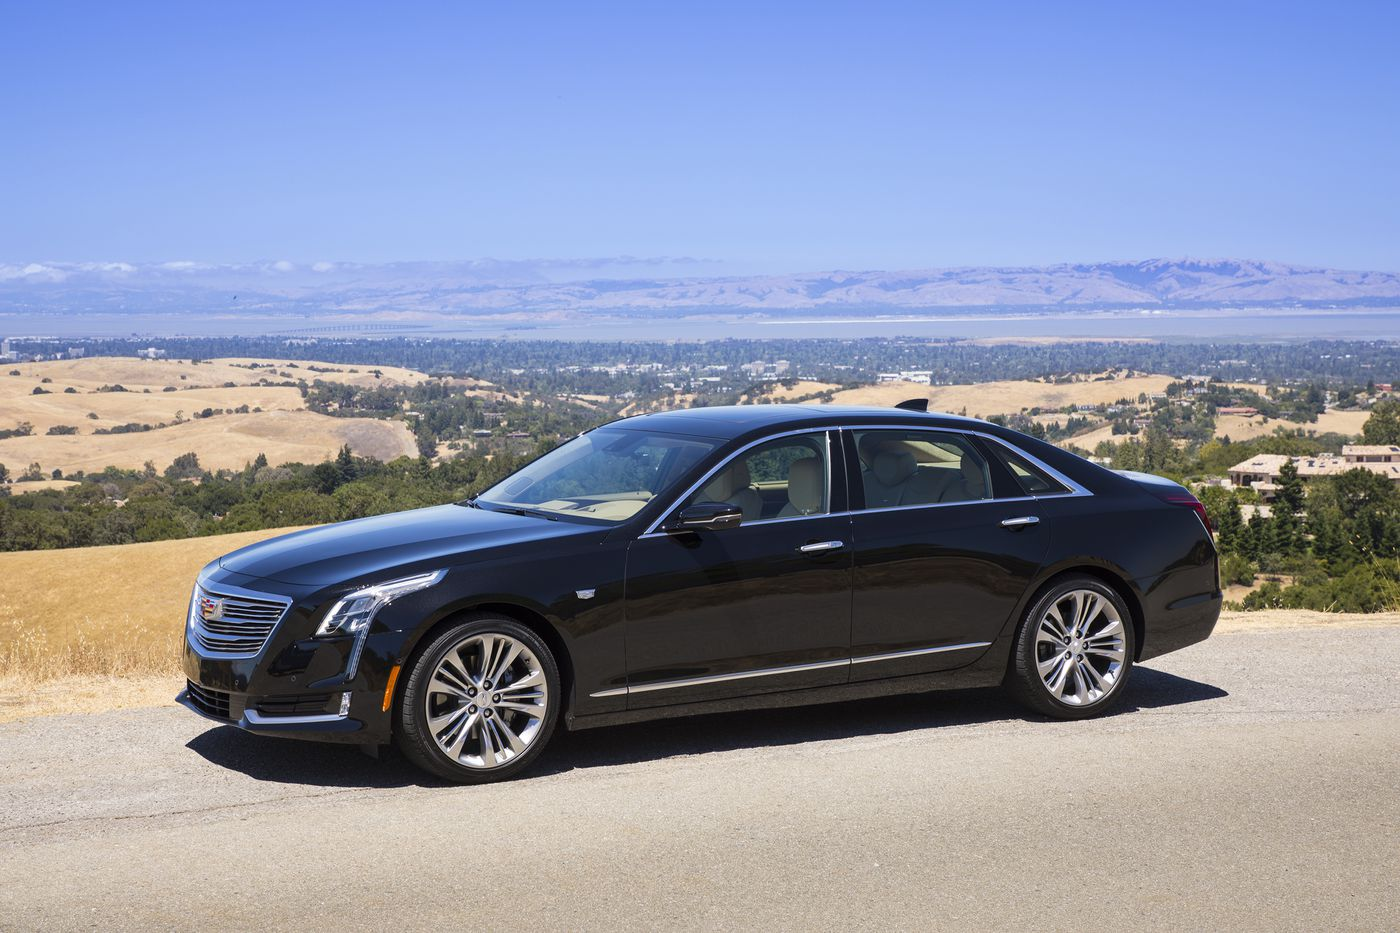 Cadillac CT6 with Super Cruise takes command of Driver's Seat